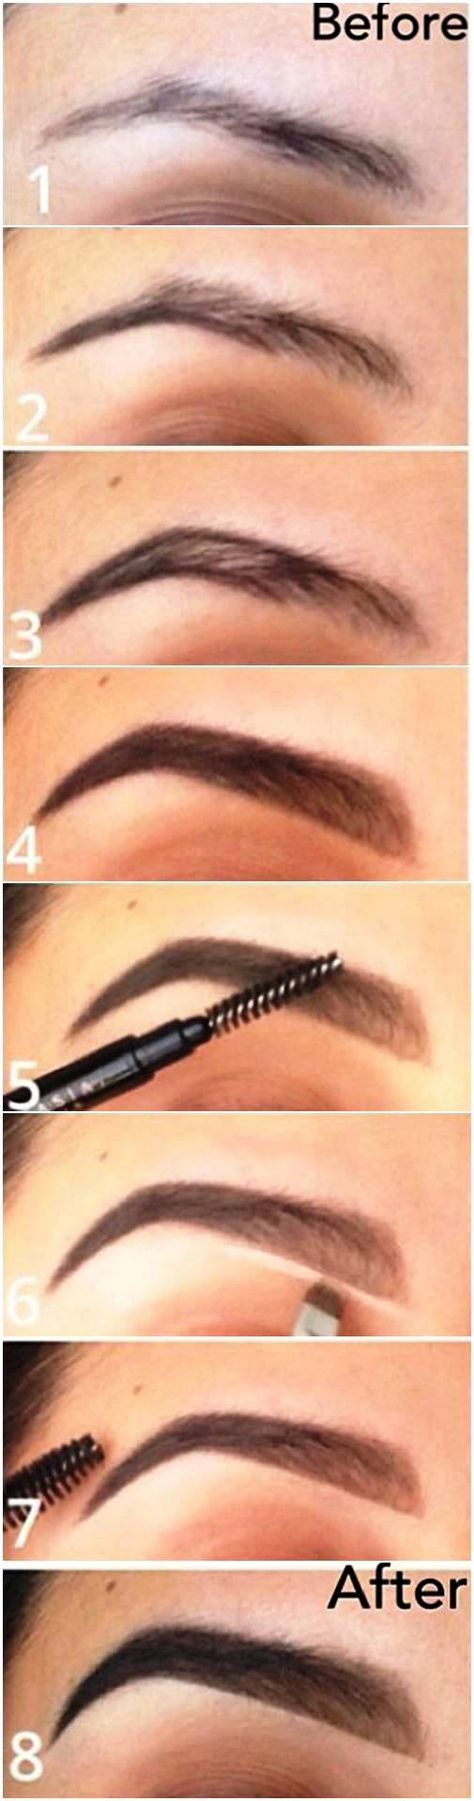 How To: Brow Tutorial